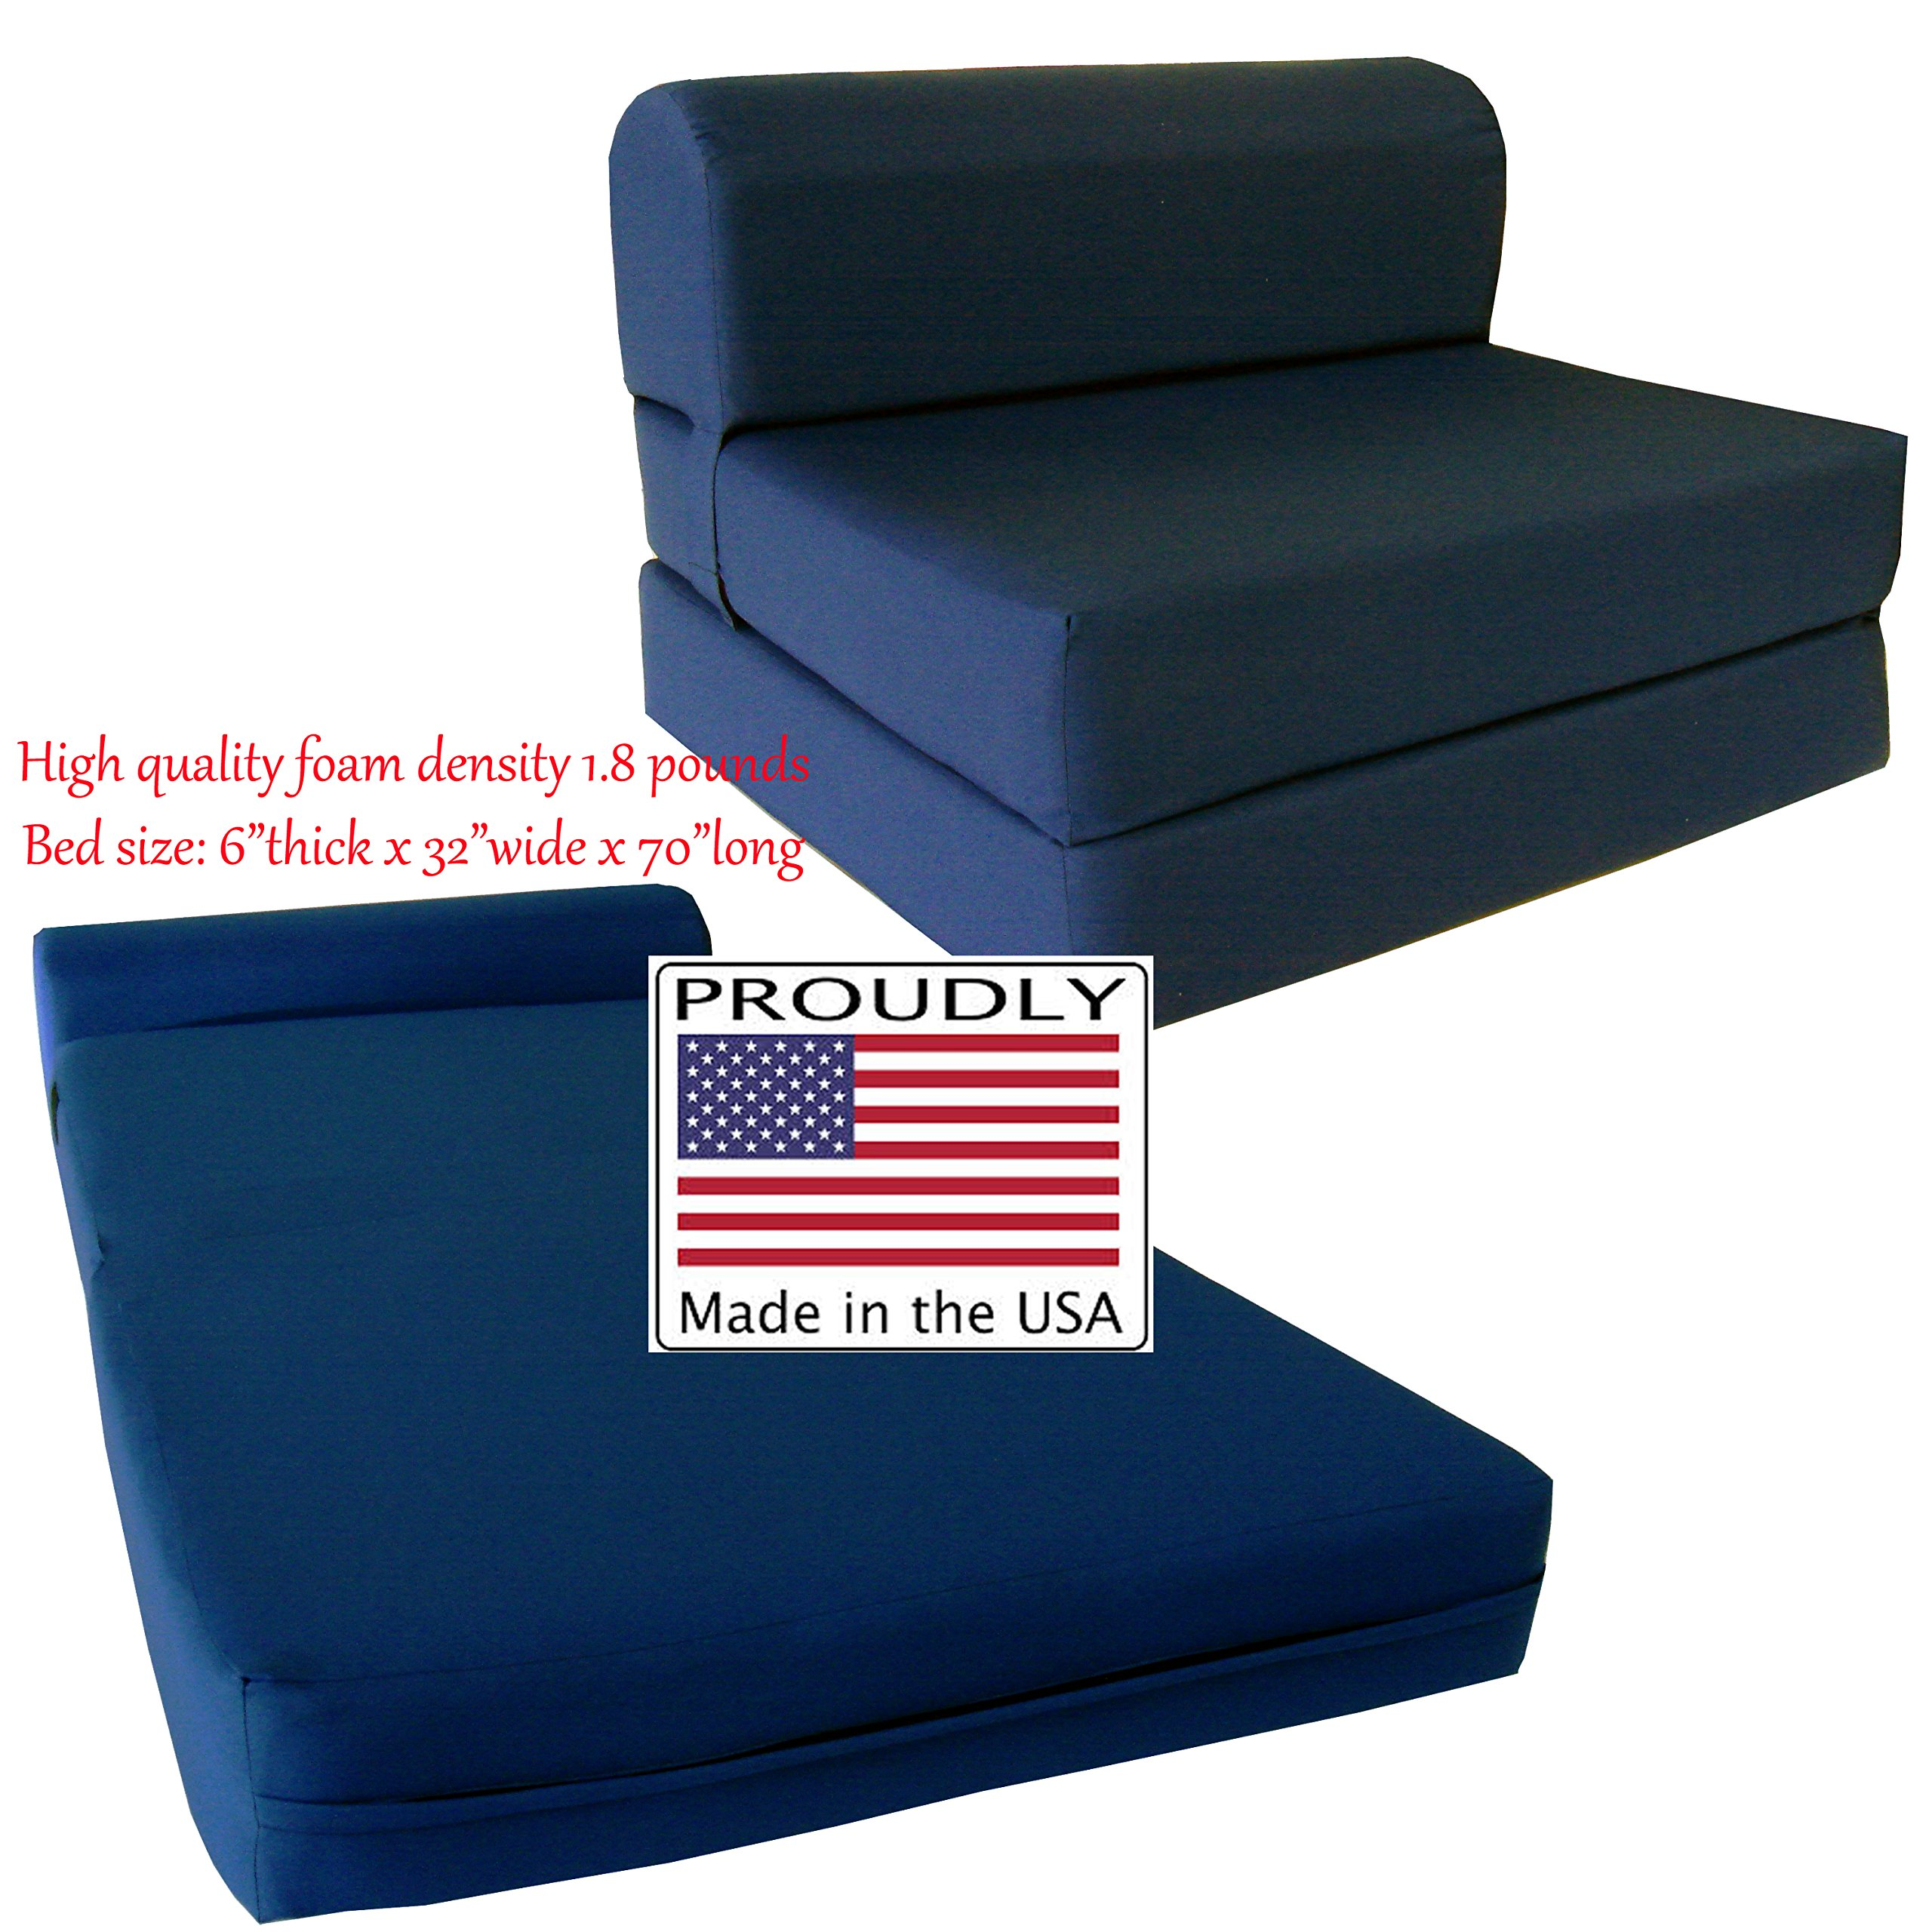 single bed fold awesome in folding home designs out beds design greatest walmart throughout chair